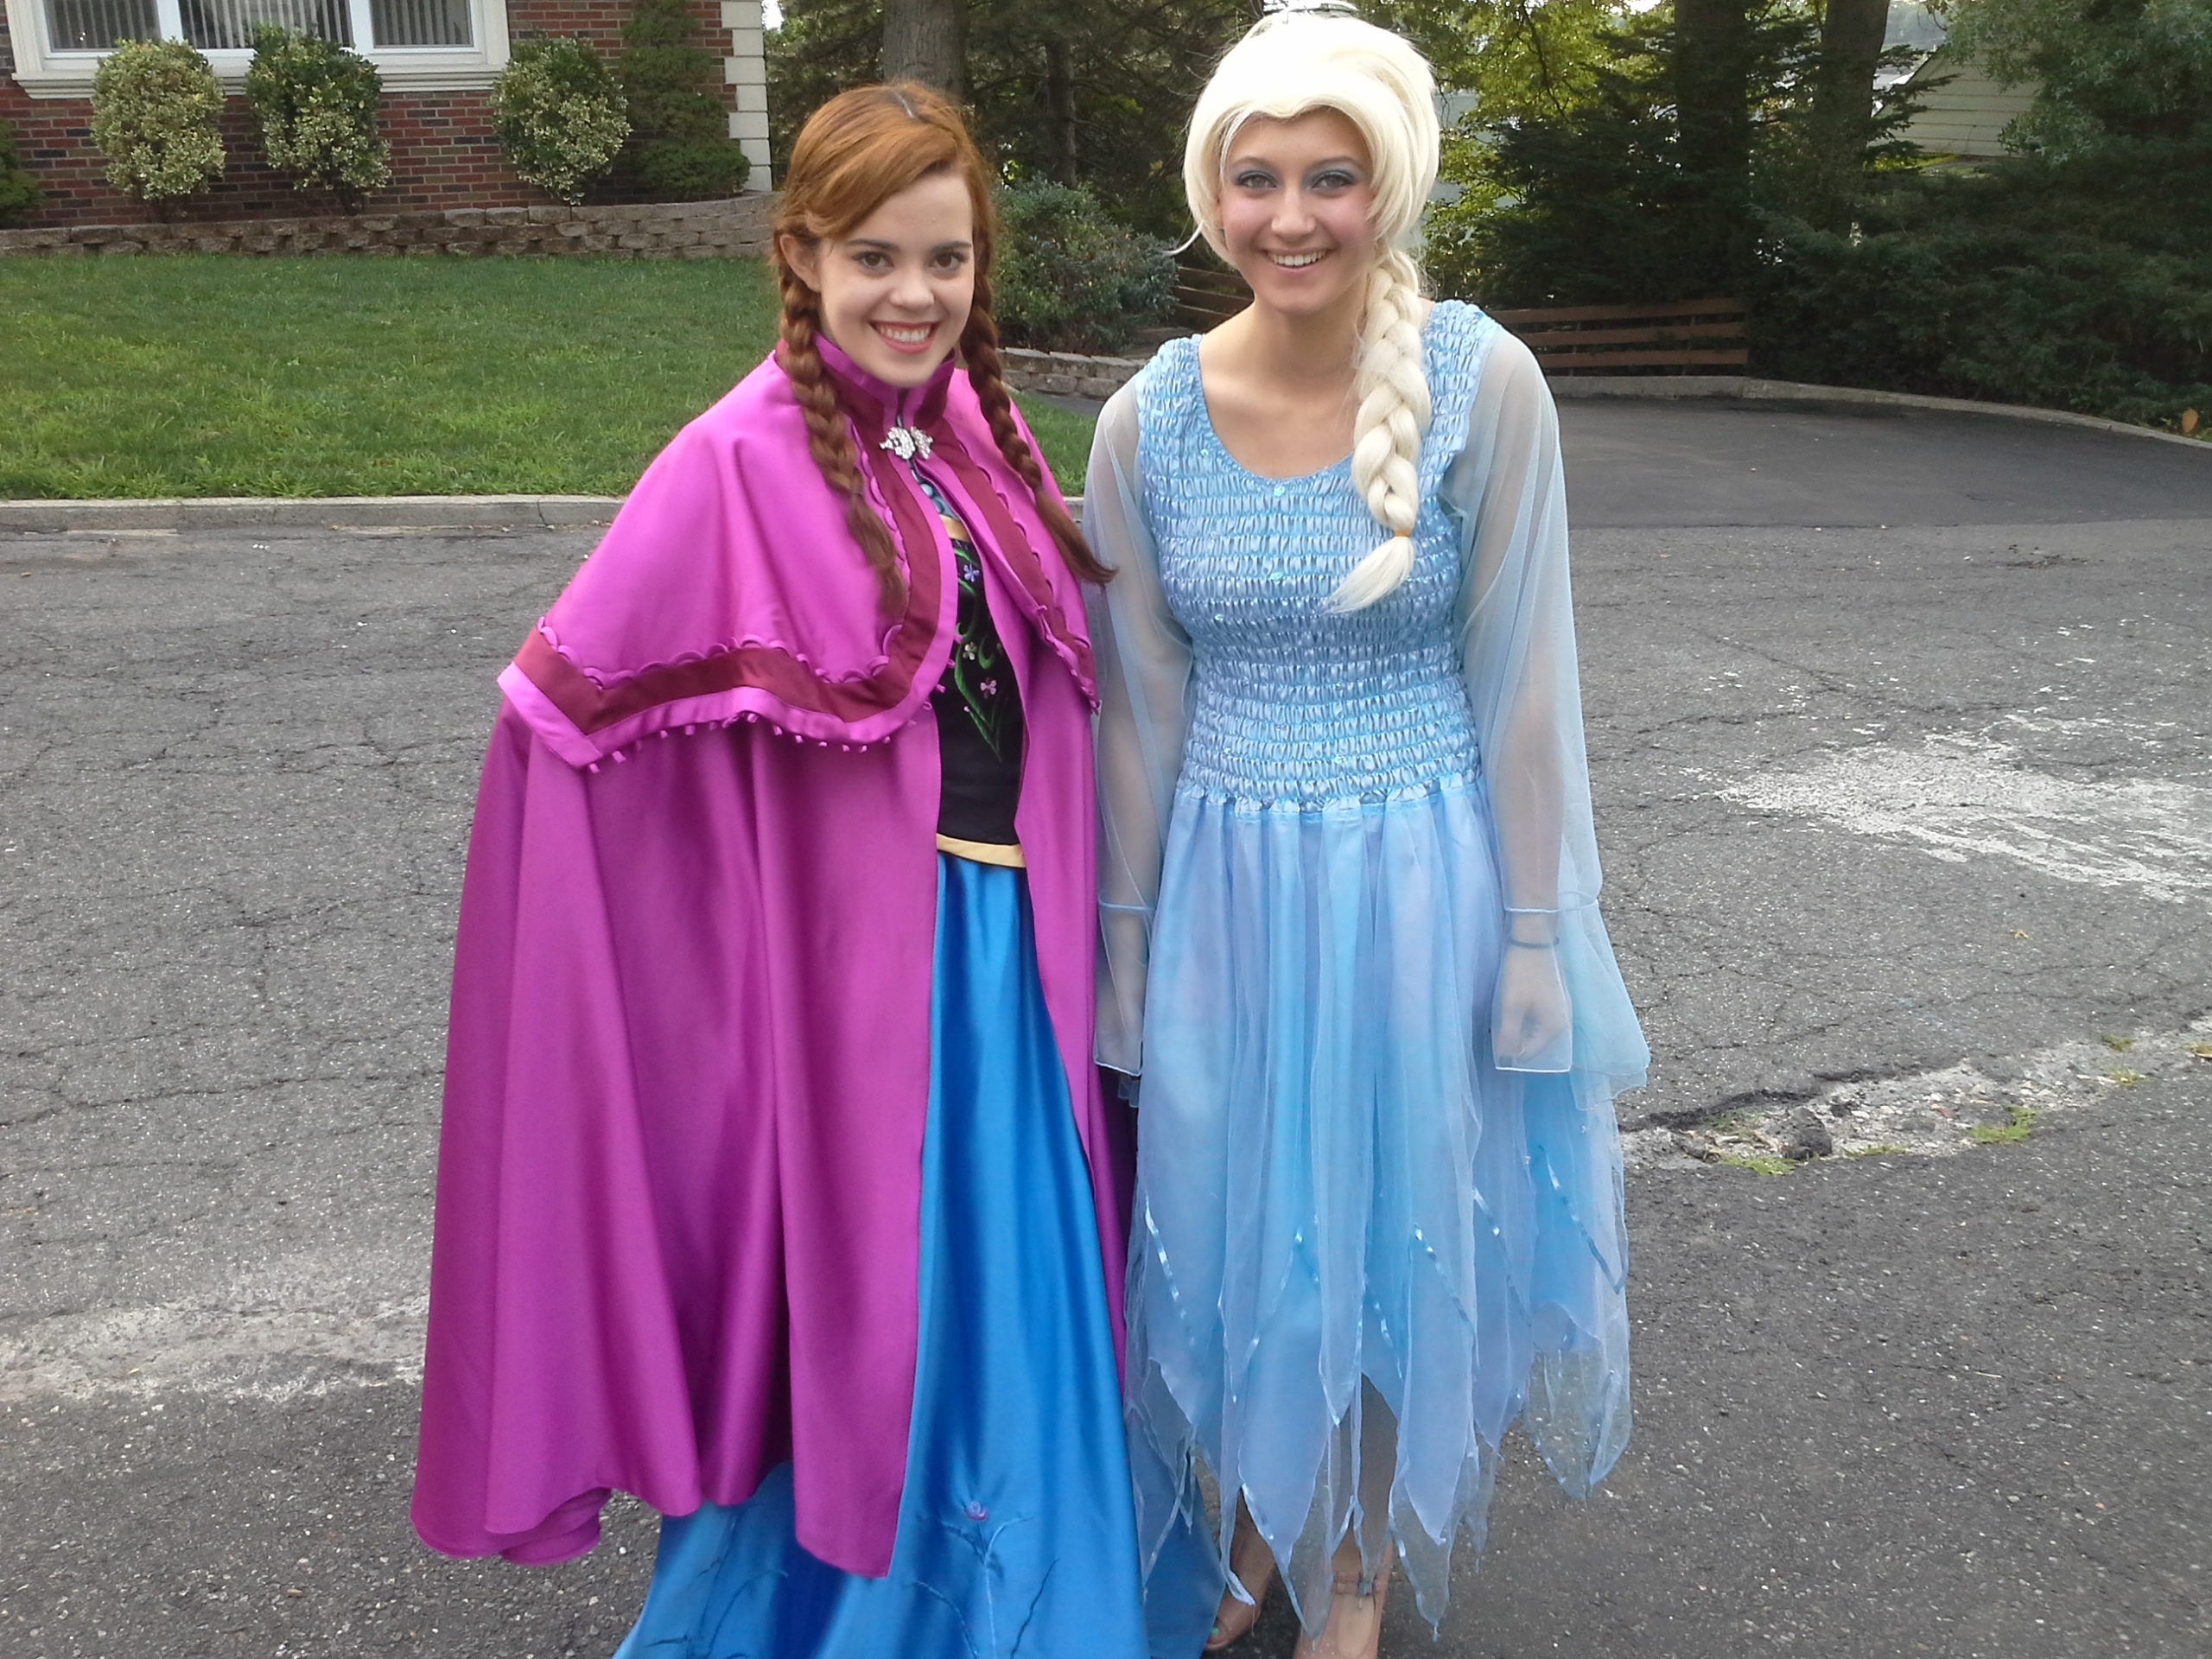 Image of two princesses smiling wearing dresses